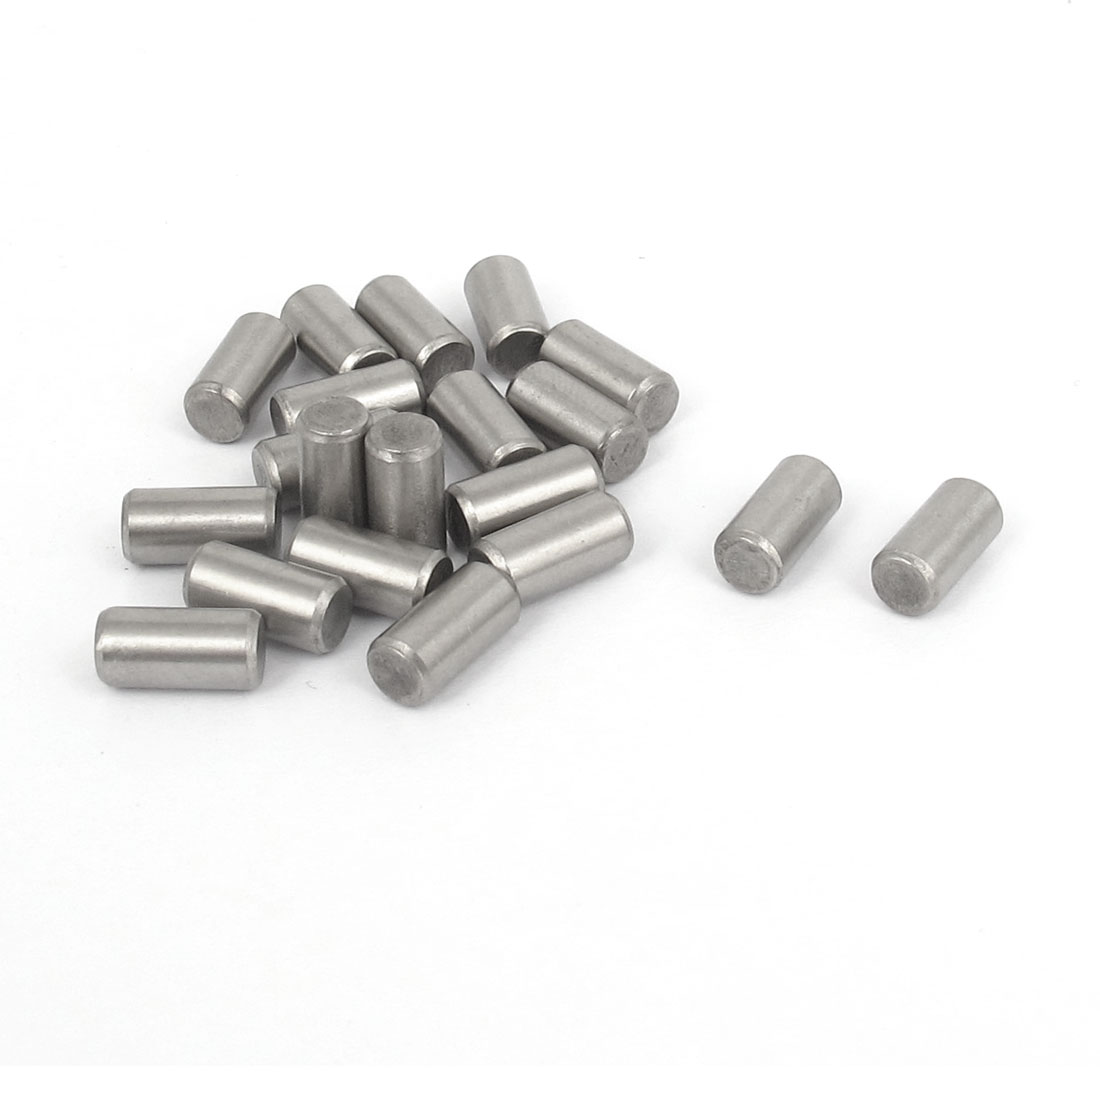 5mmx10mm 304 Stainless Steel Parallel Dowel Pins Fastener Elements 20pcs